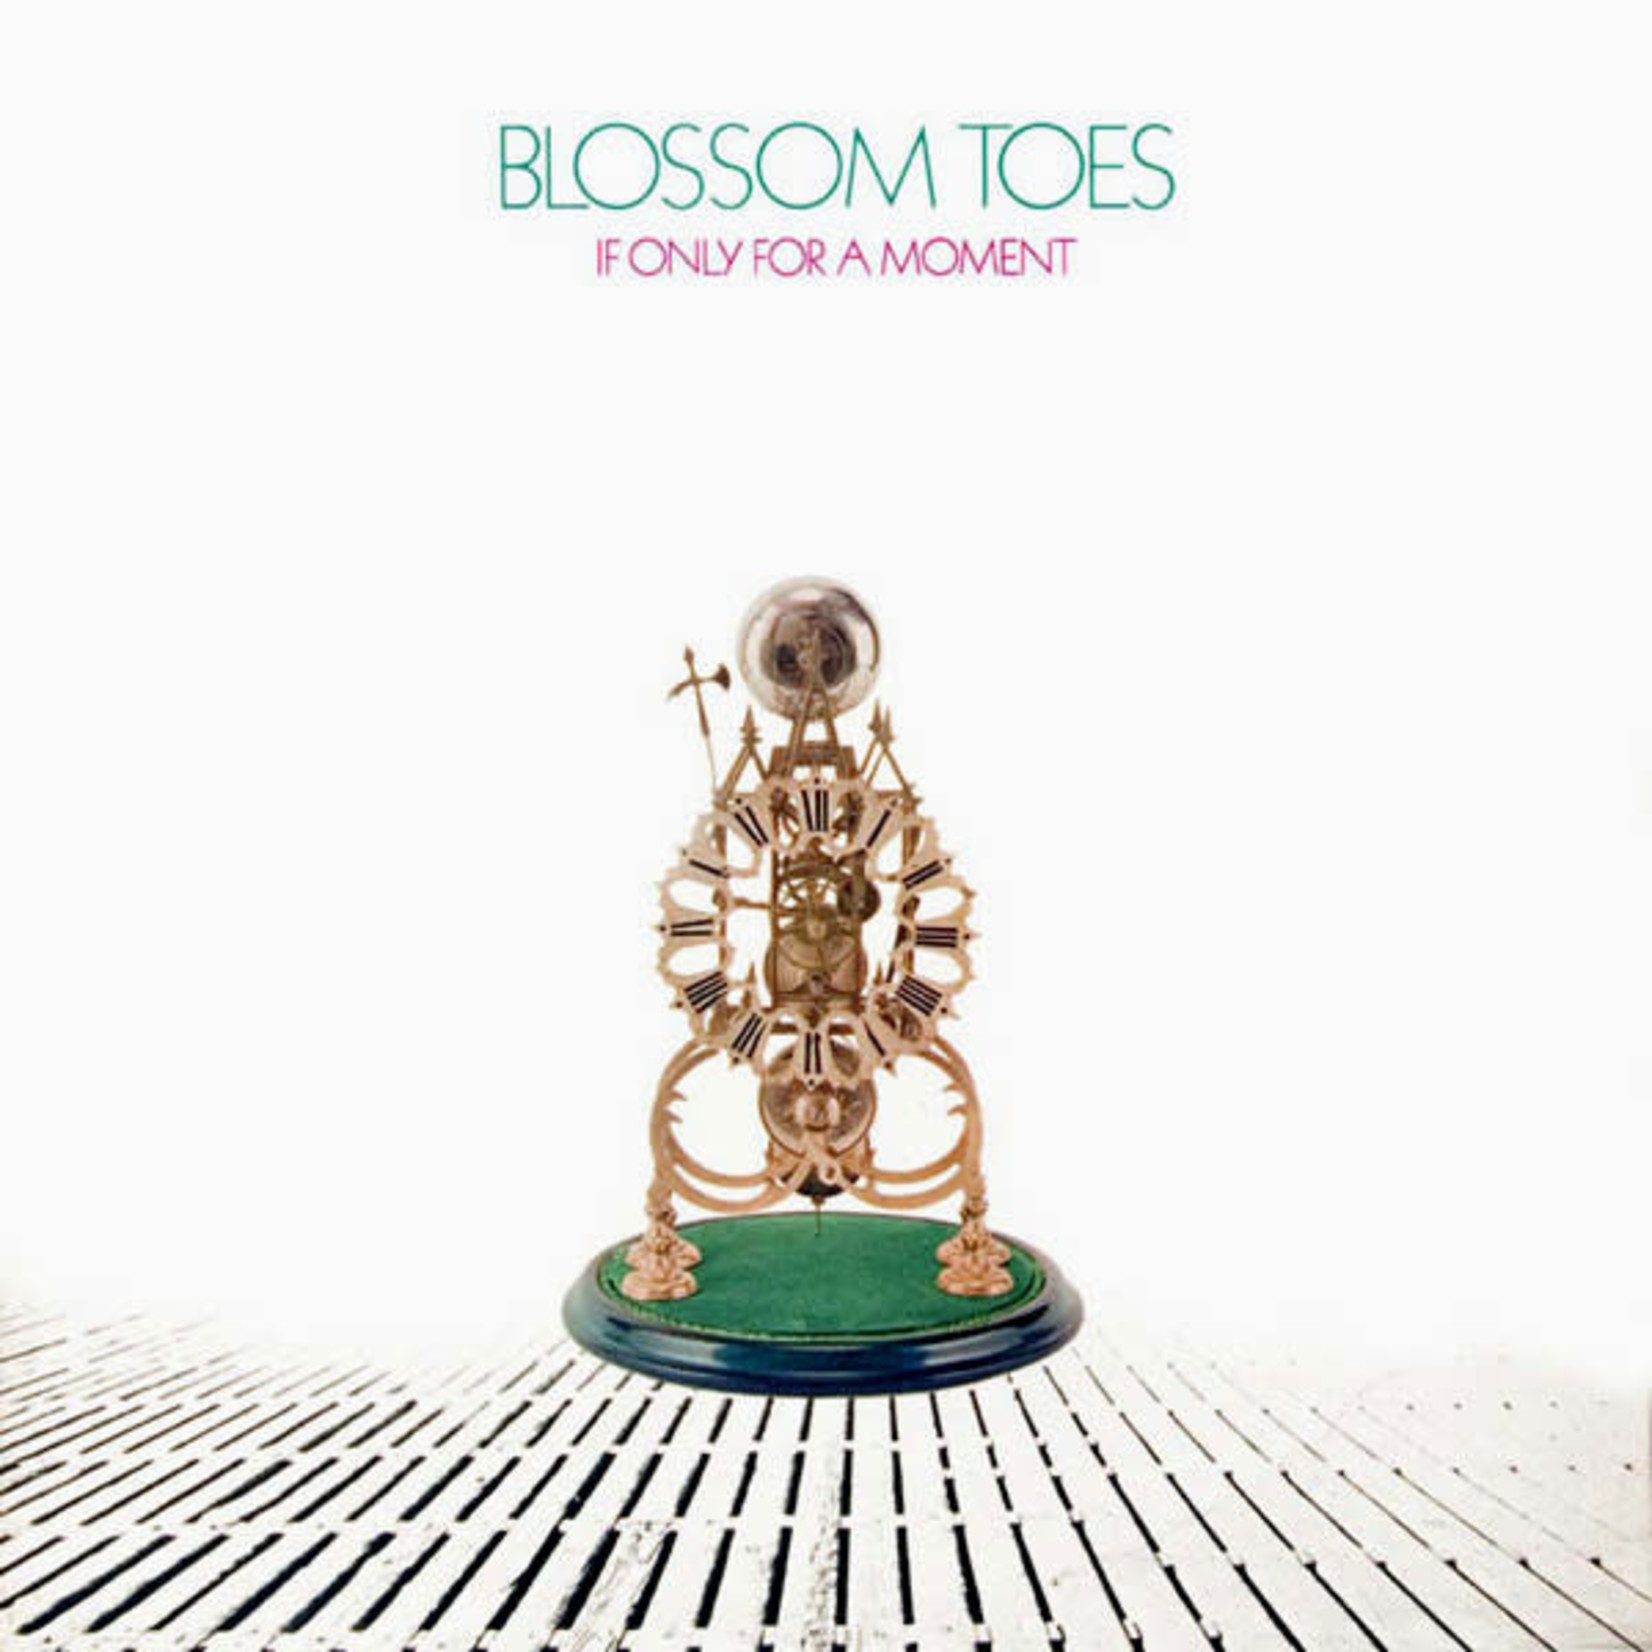 Blossom Toes - If Only For A Moment